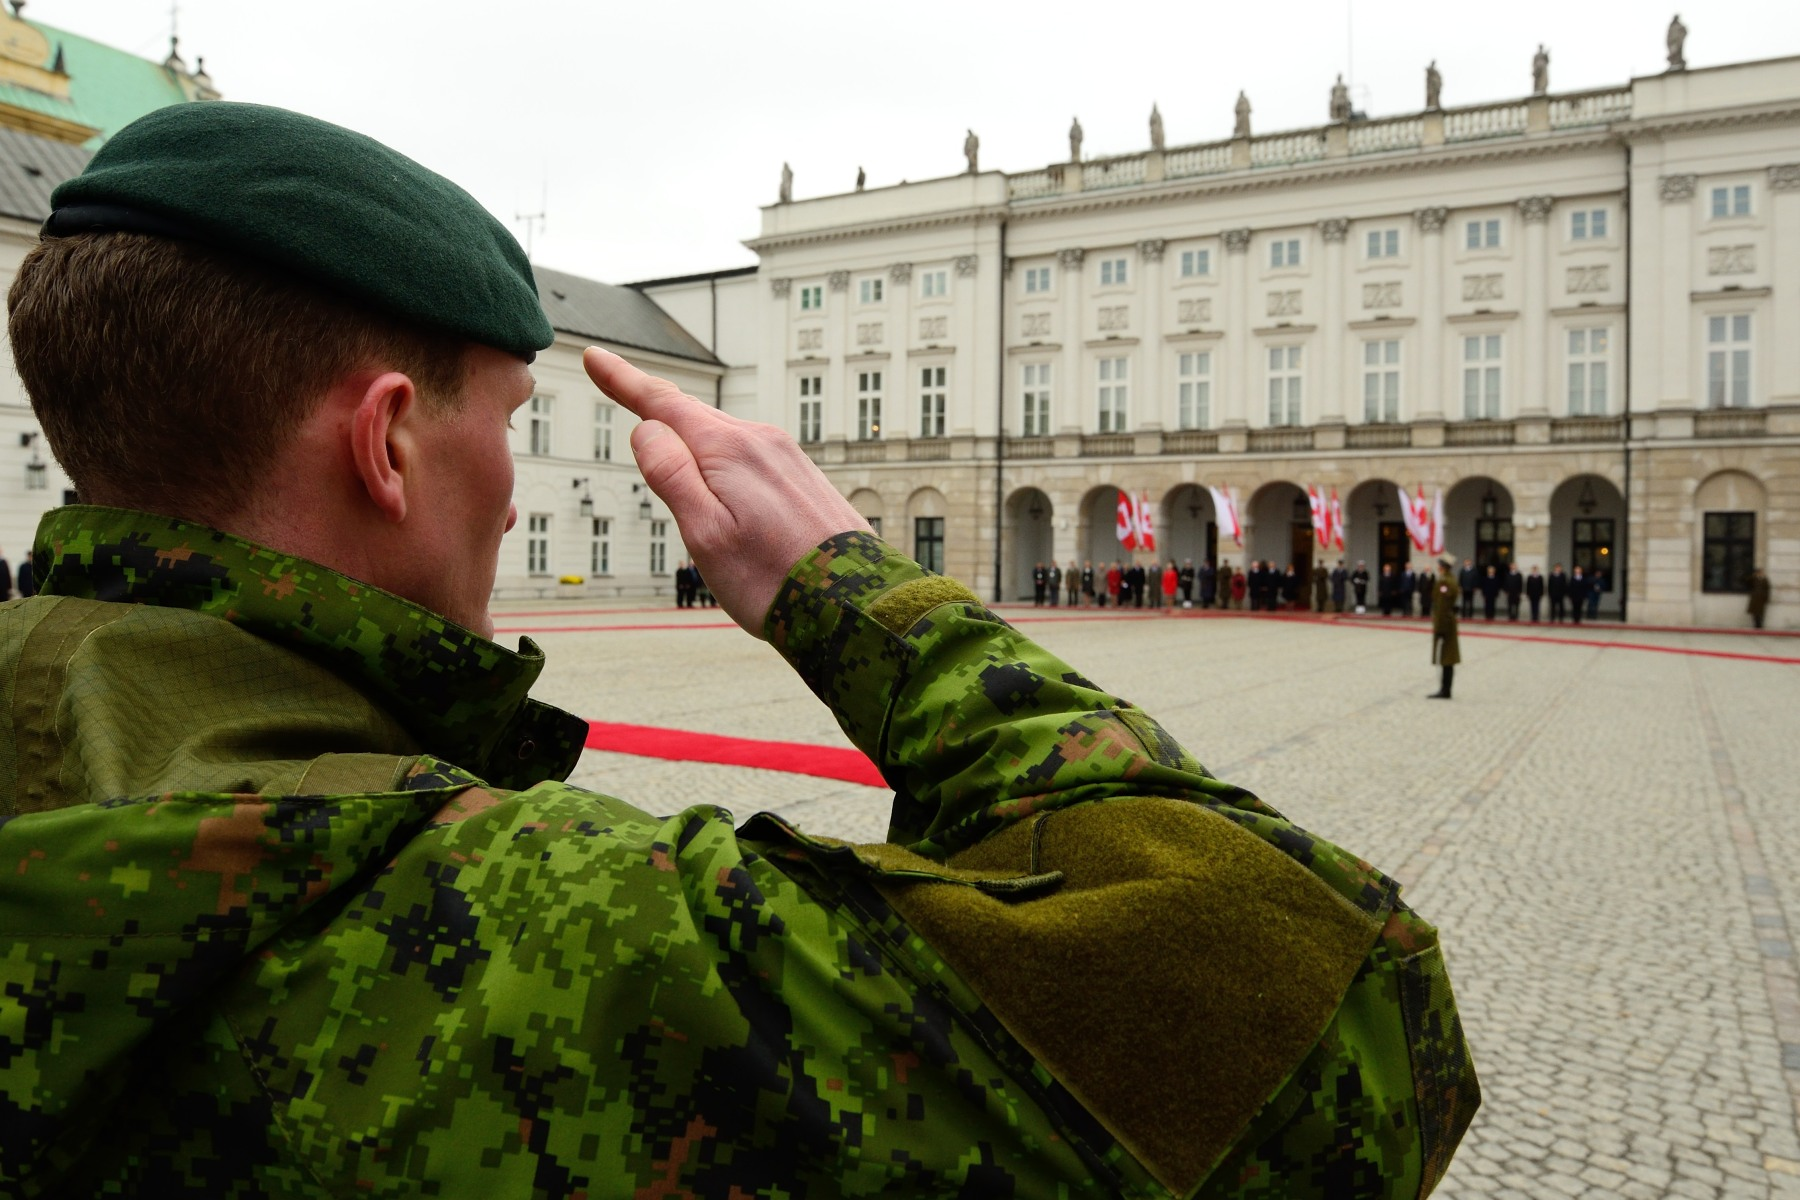 Canadian troops currently training in Poland as part of the North Atlantic Treaty Organization (NATO) reassurance measures were also present.